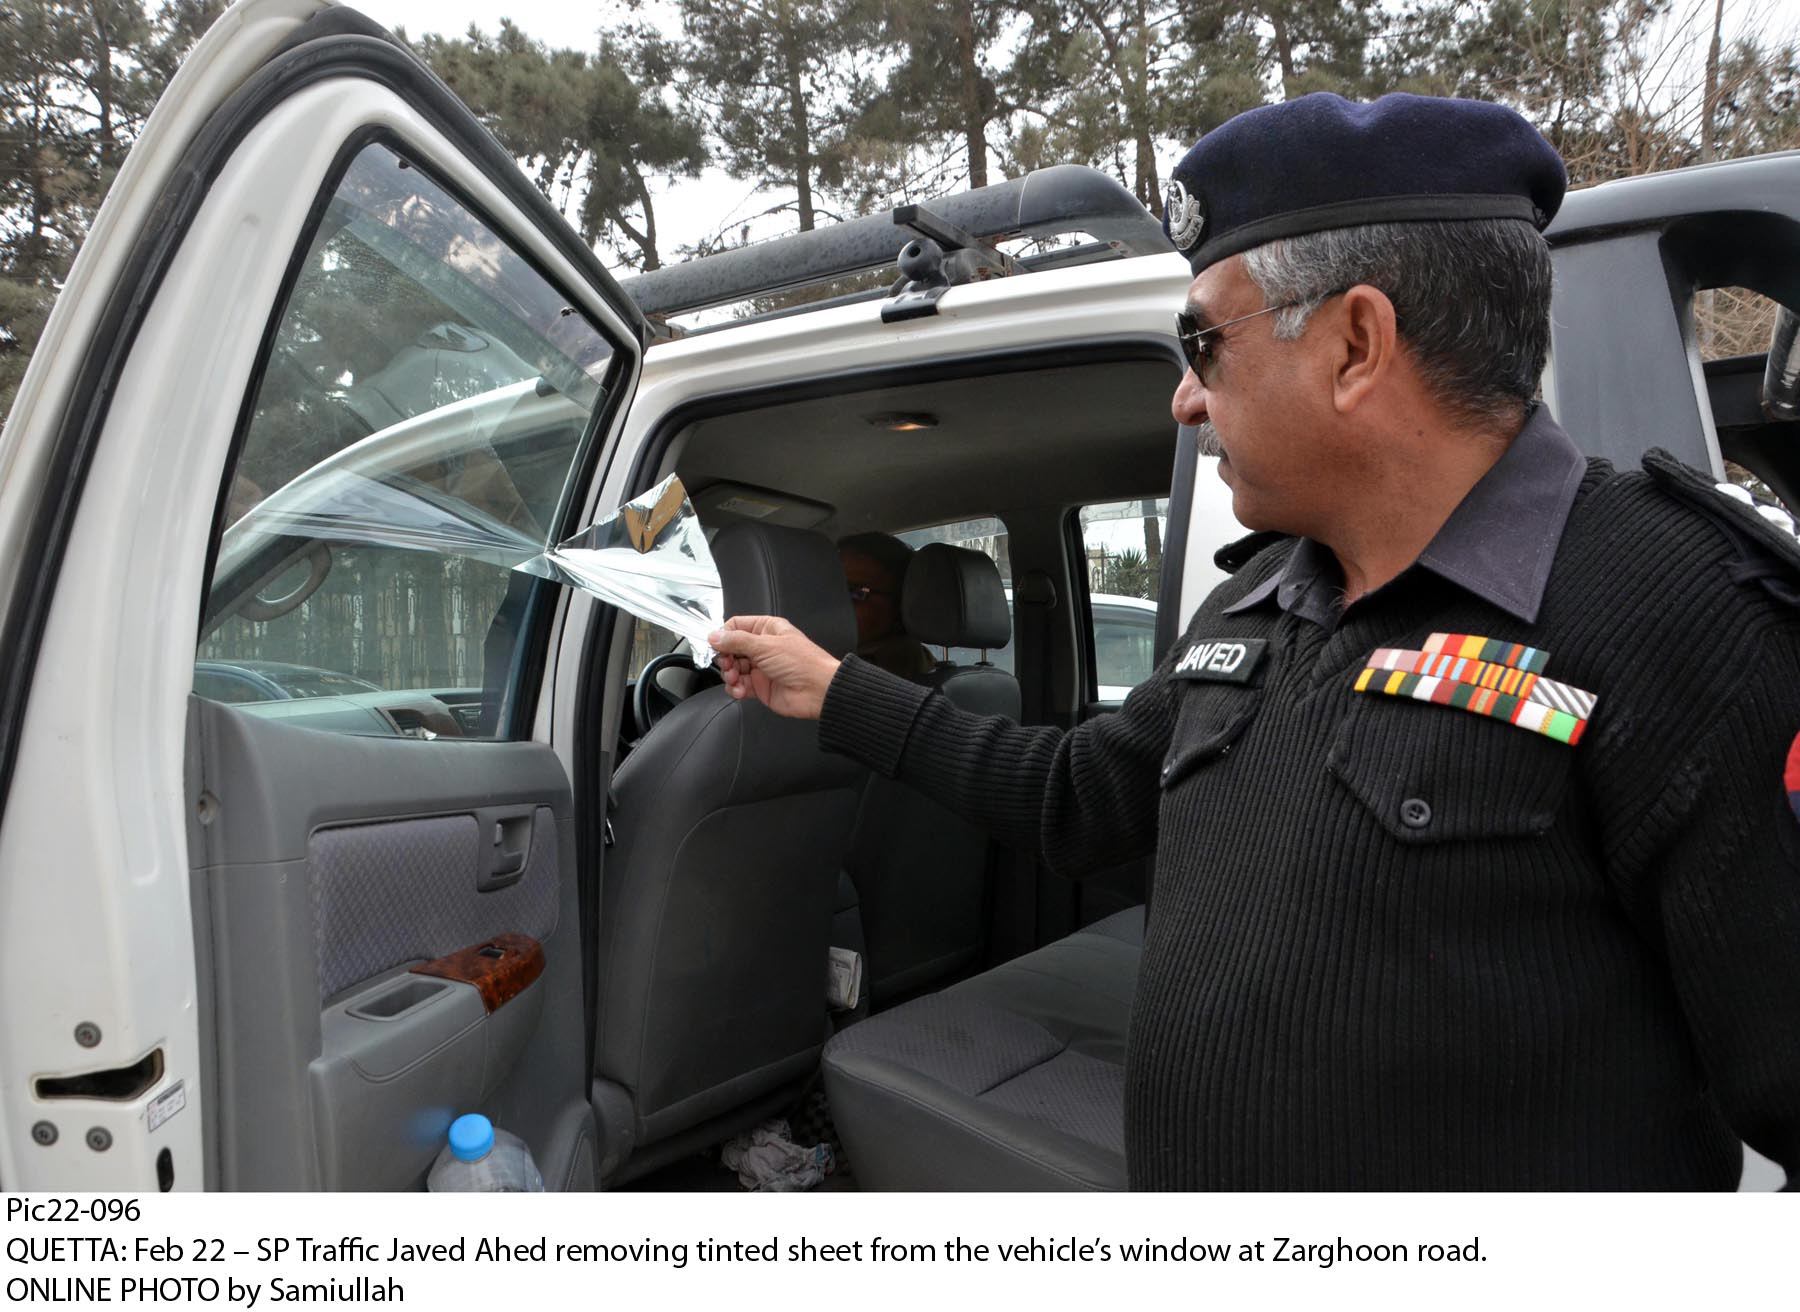 traffic superintendent of police javed ahad removing tint from a vehicle 039 s window on zarghoon road in quetta photo online